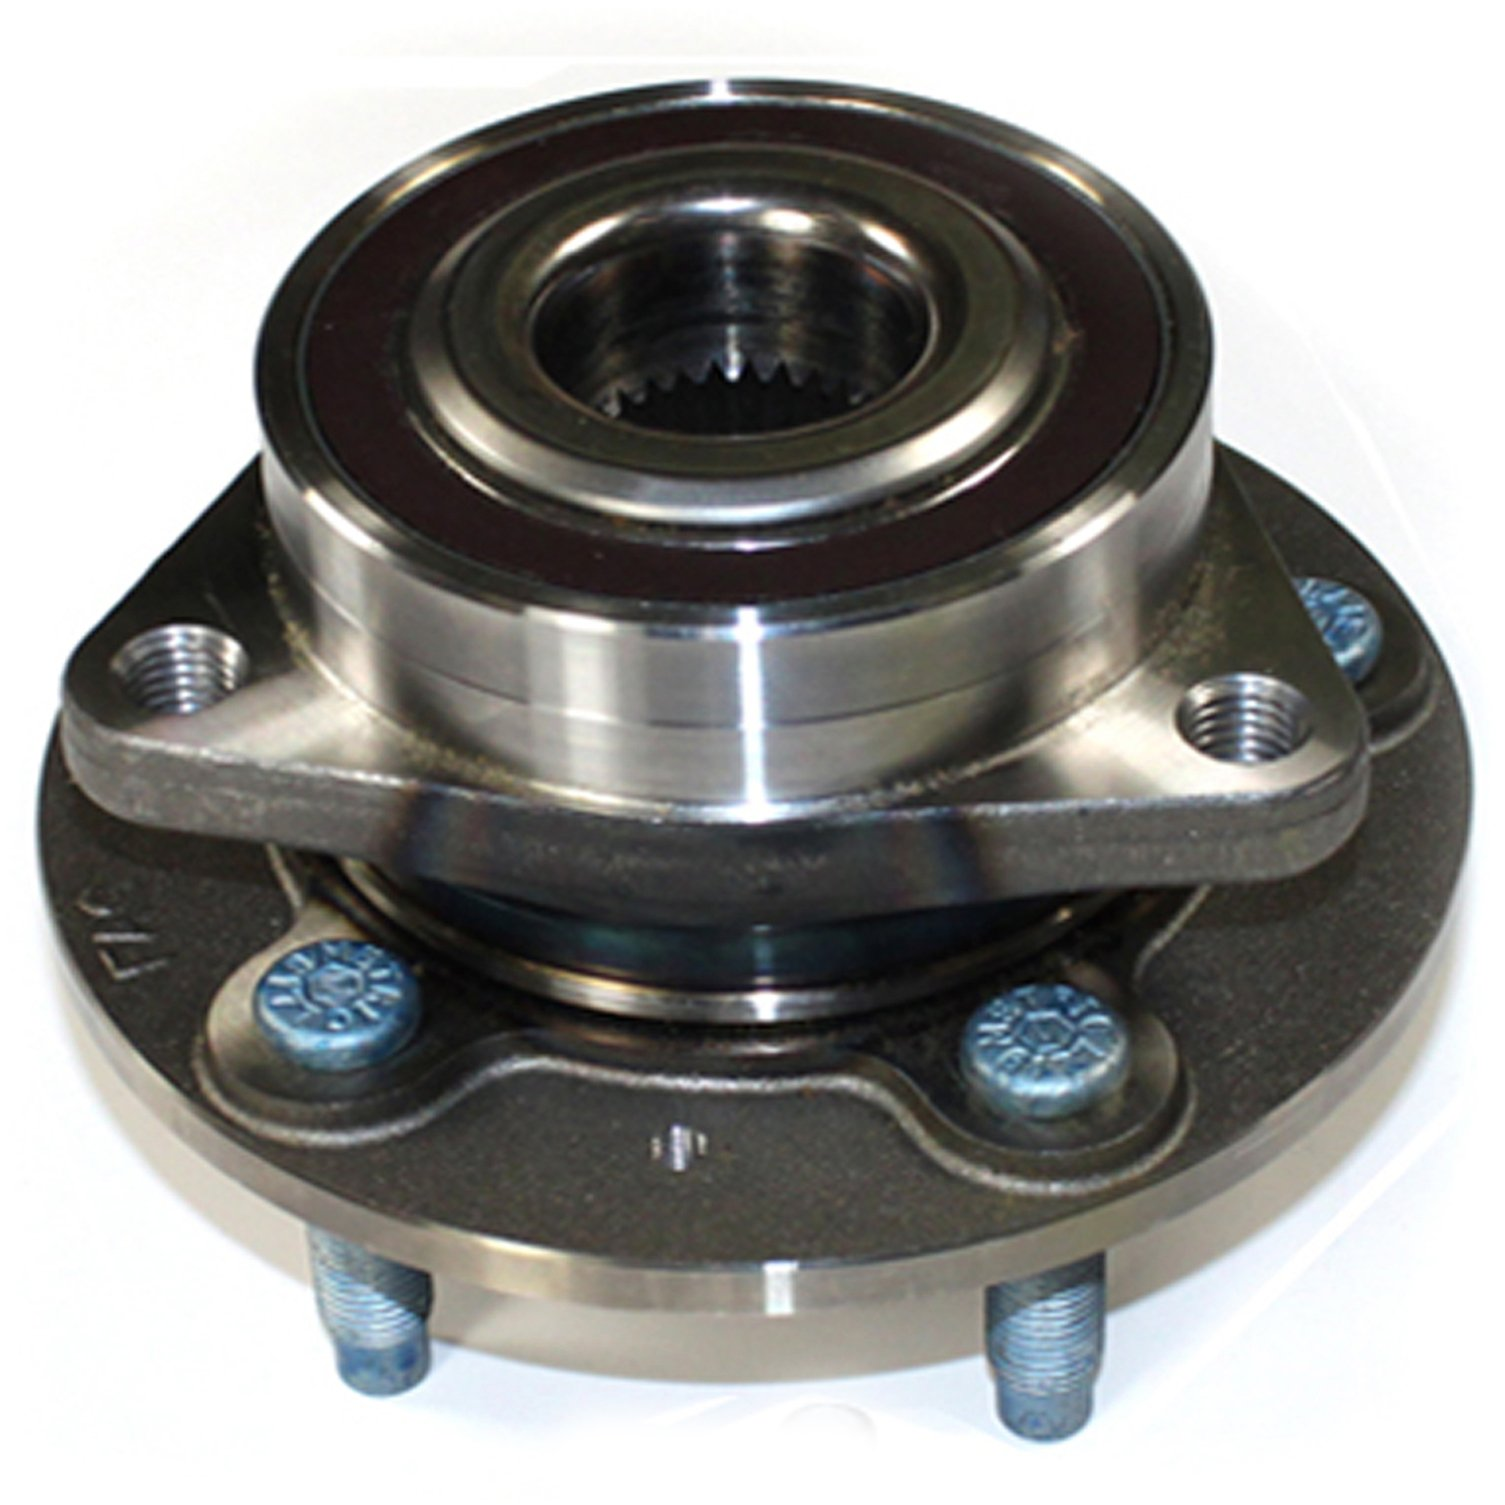 CENTRIC PARTS - HUB ASSEMBLY